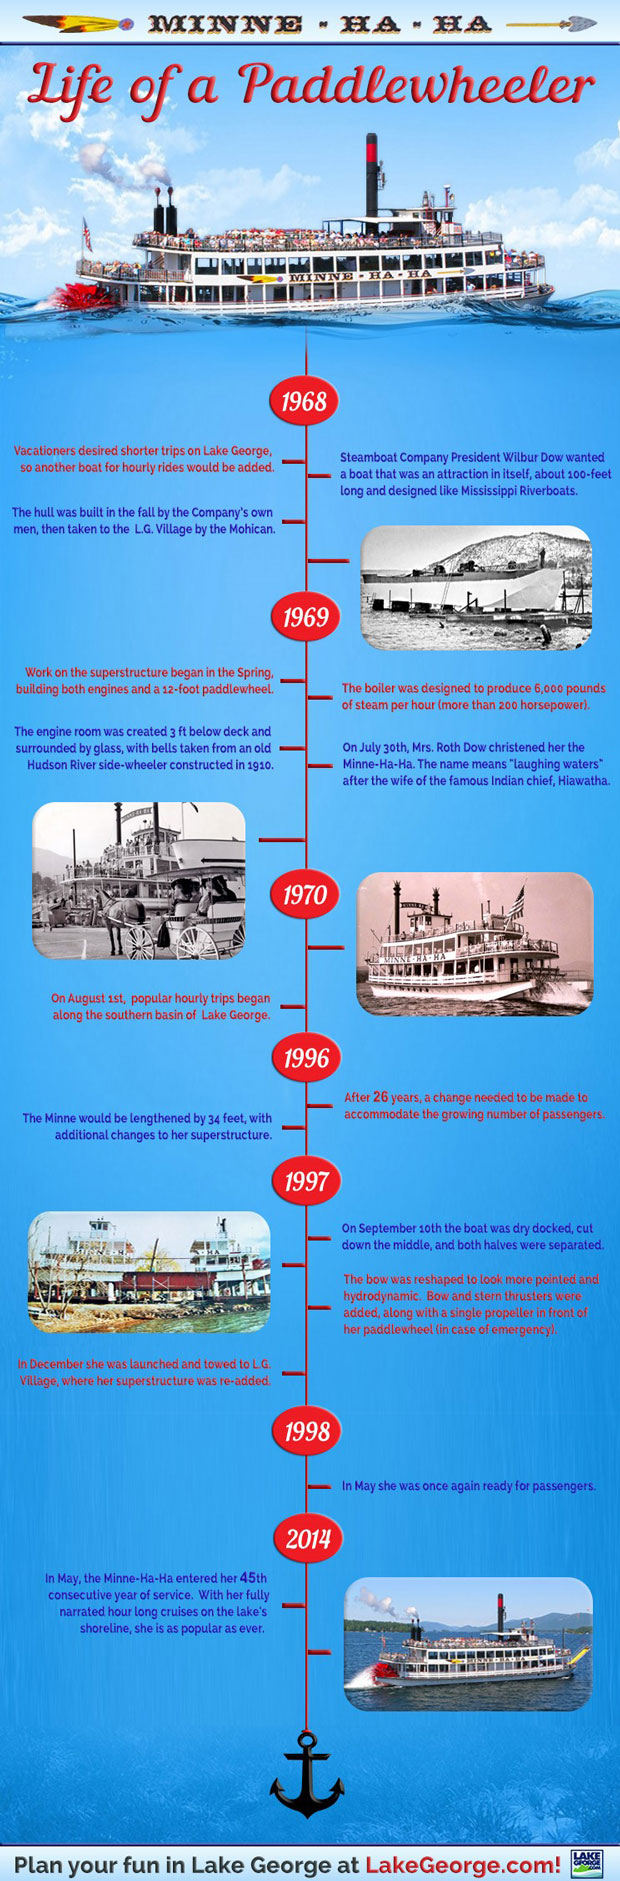 Did you know the Minne Ha-Ha was at one point in its life CUT COMPLETELY IN HALF and extended?   Learn the fascinating history of one of Lake George's oldest attractions with this infographic!  Check out the full image here >> bit.ly/1wOQLpg